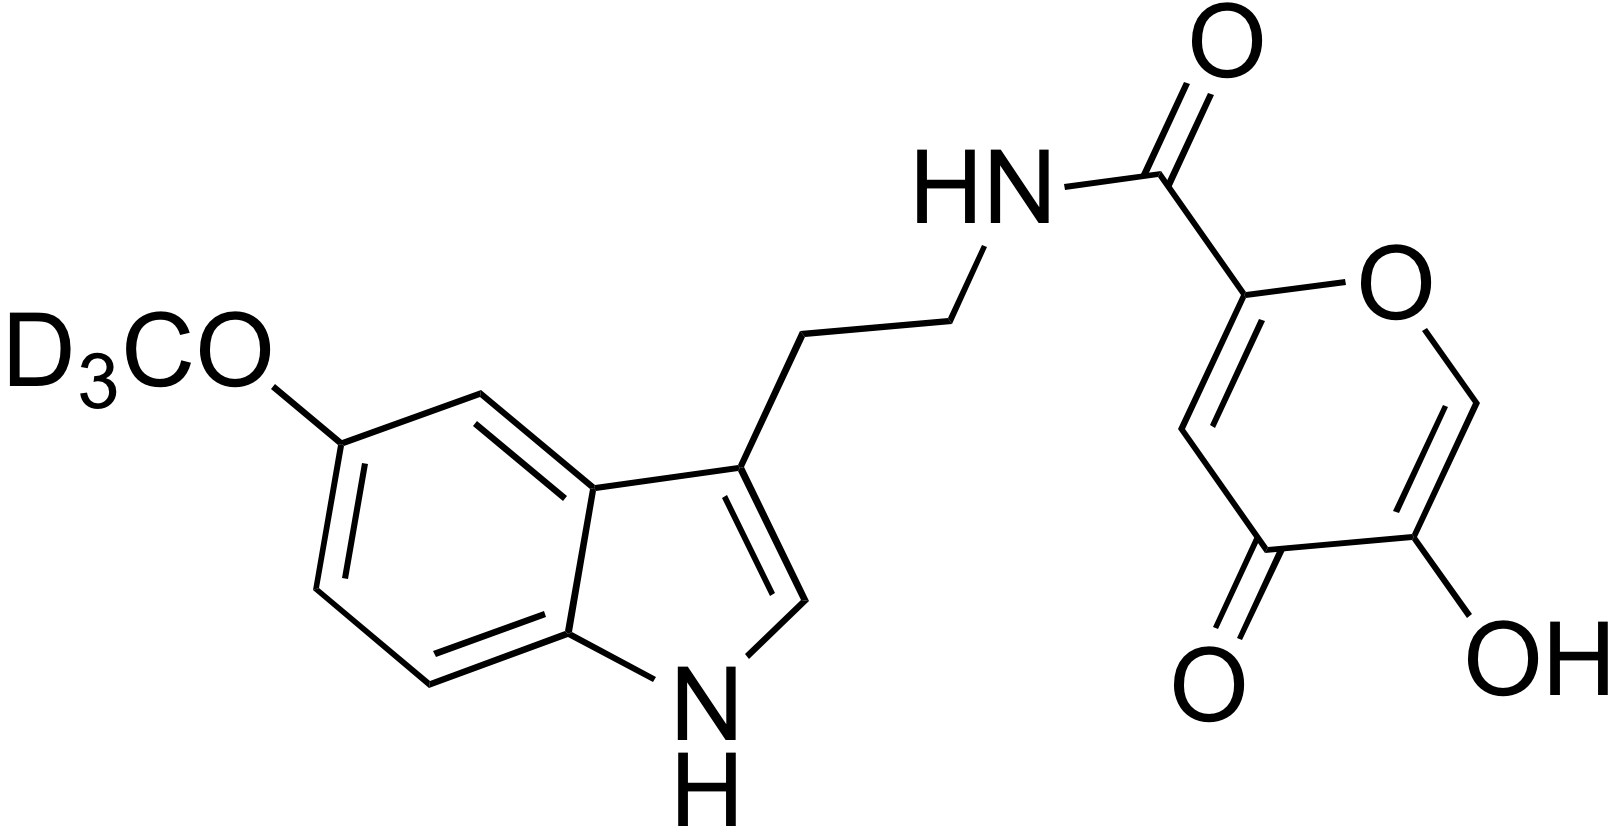 N-[2-(5-Methoxy-d<sub>3</sub>-indol-3-yl)-ethyl]-commenamide